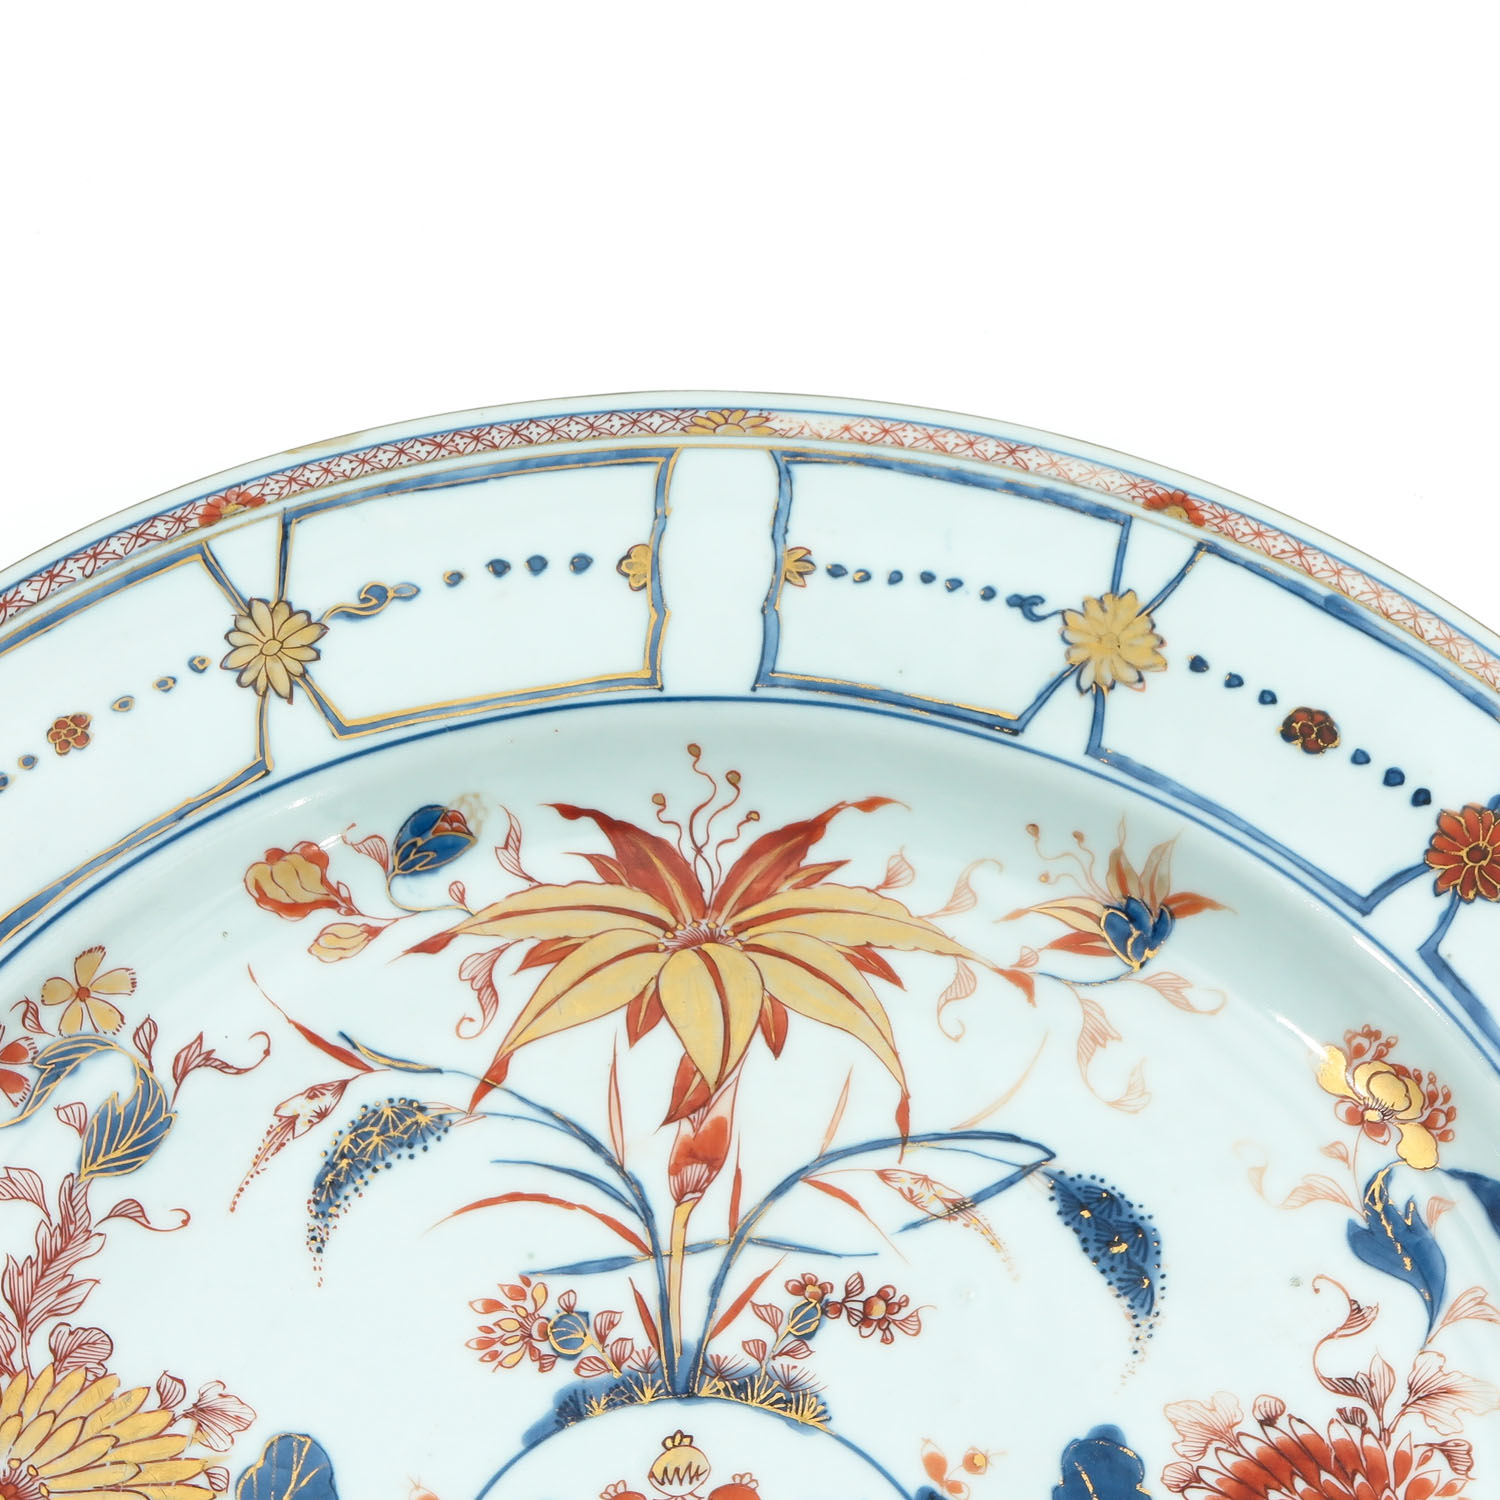 A Large Imari Charger - Image 3 of 7